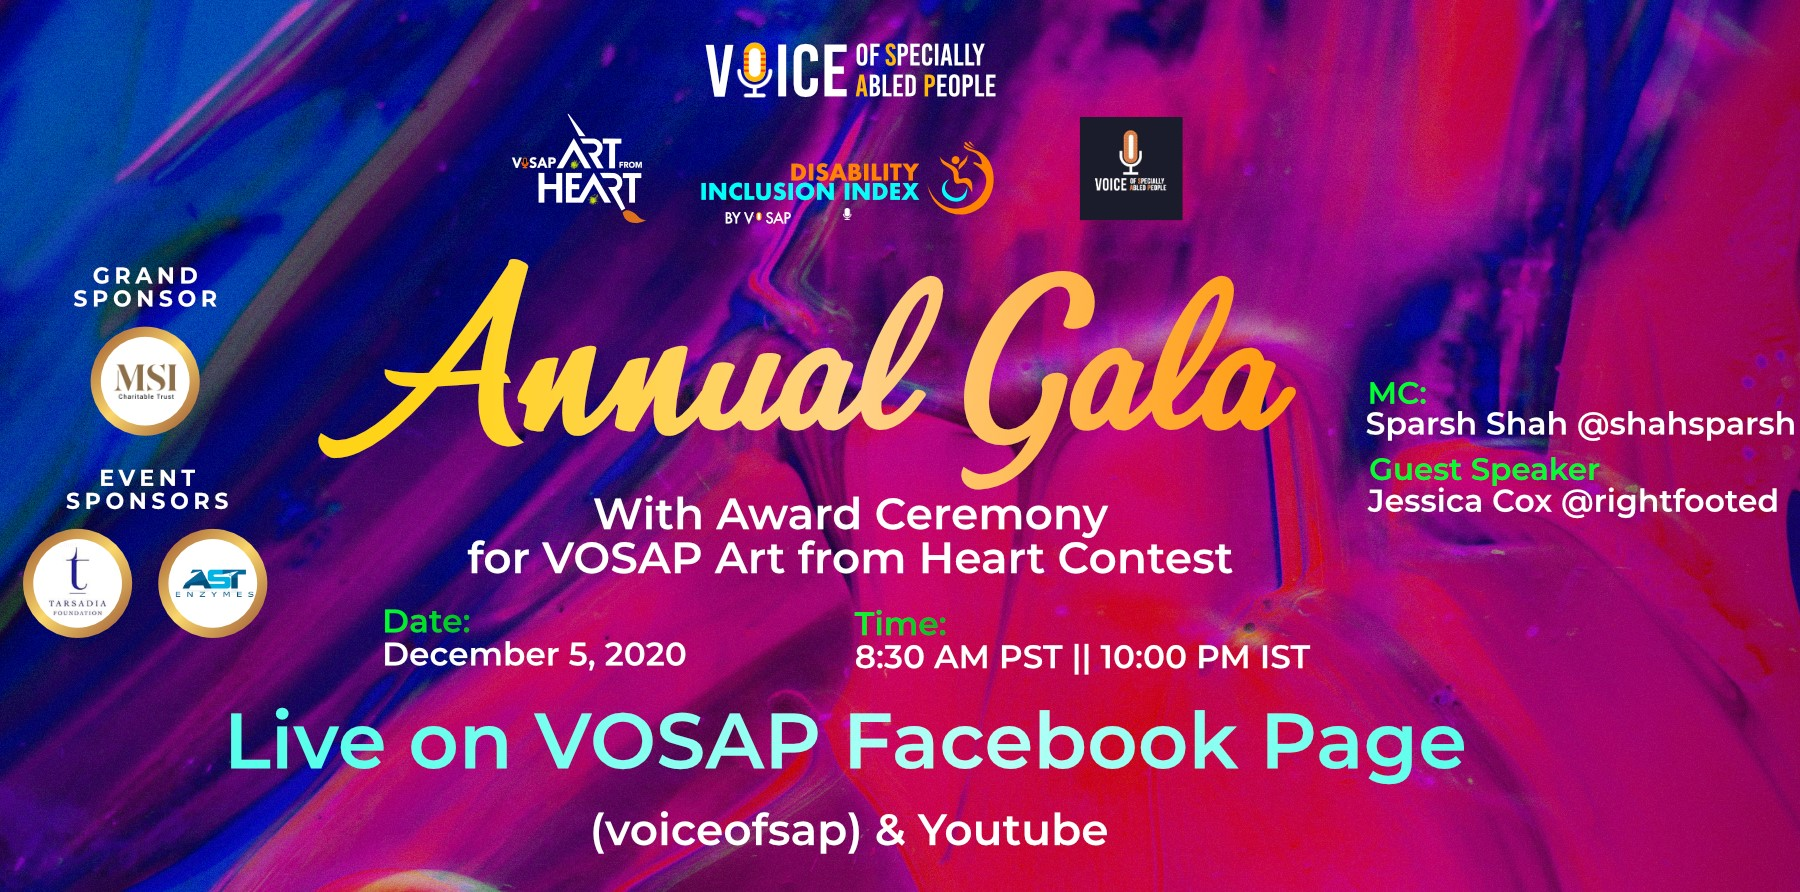 VOSAP Annual Gala and Award Ceremony